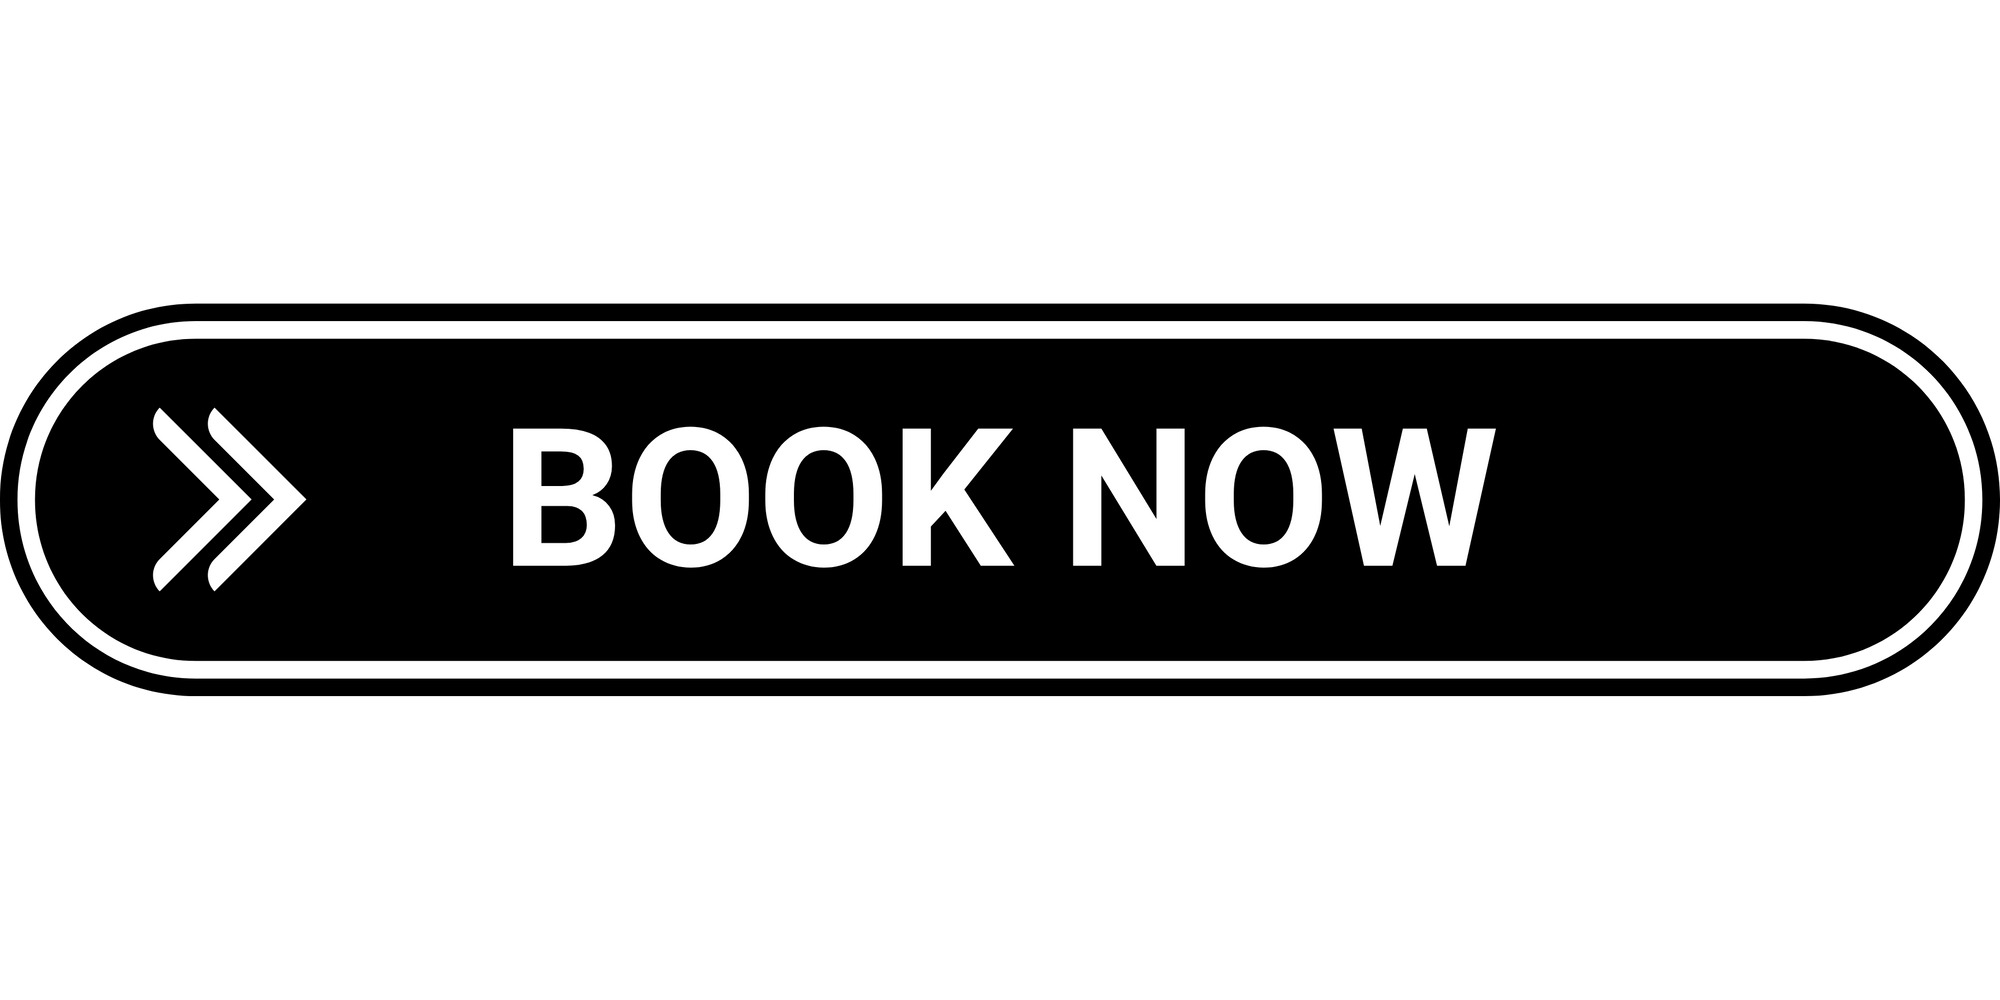 Book now button to schedule an appointment